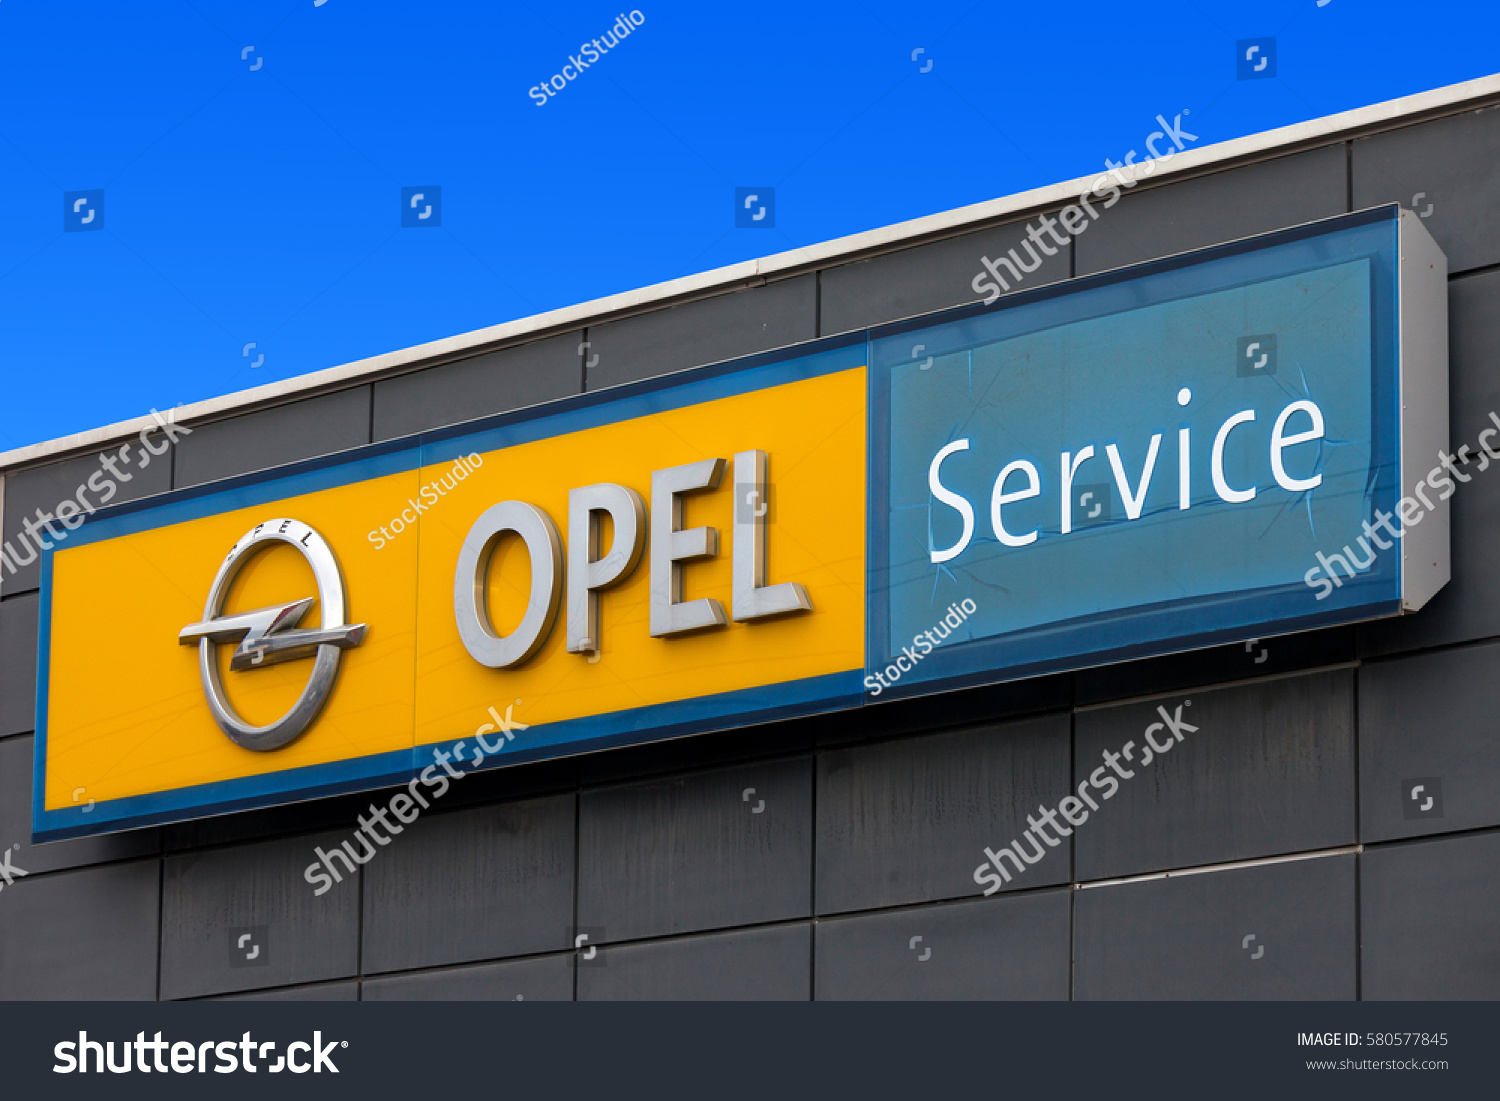 Rome Italy February 16 2017 Opel Stock Photo 580577845 Shutterstock